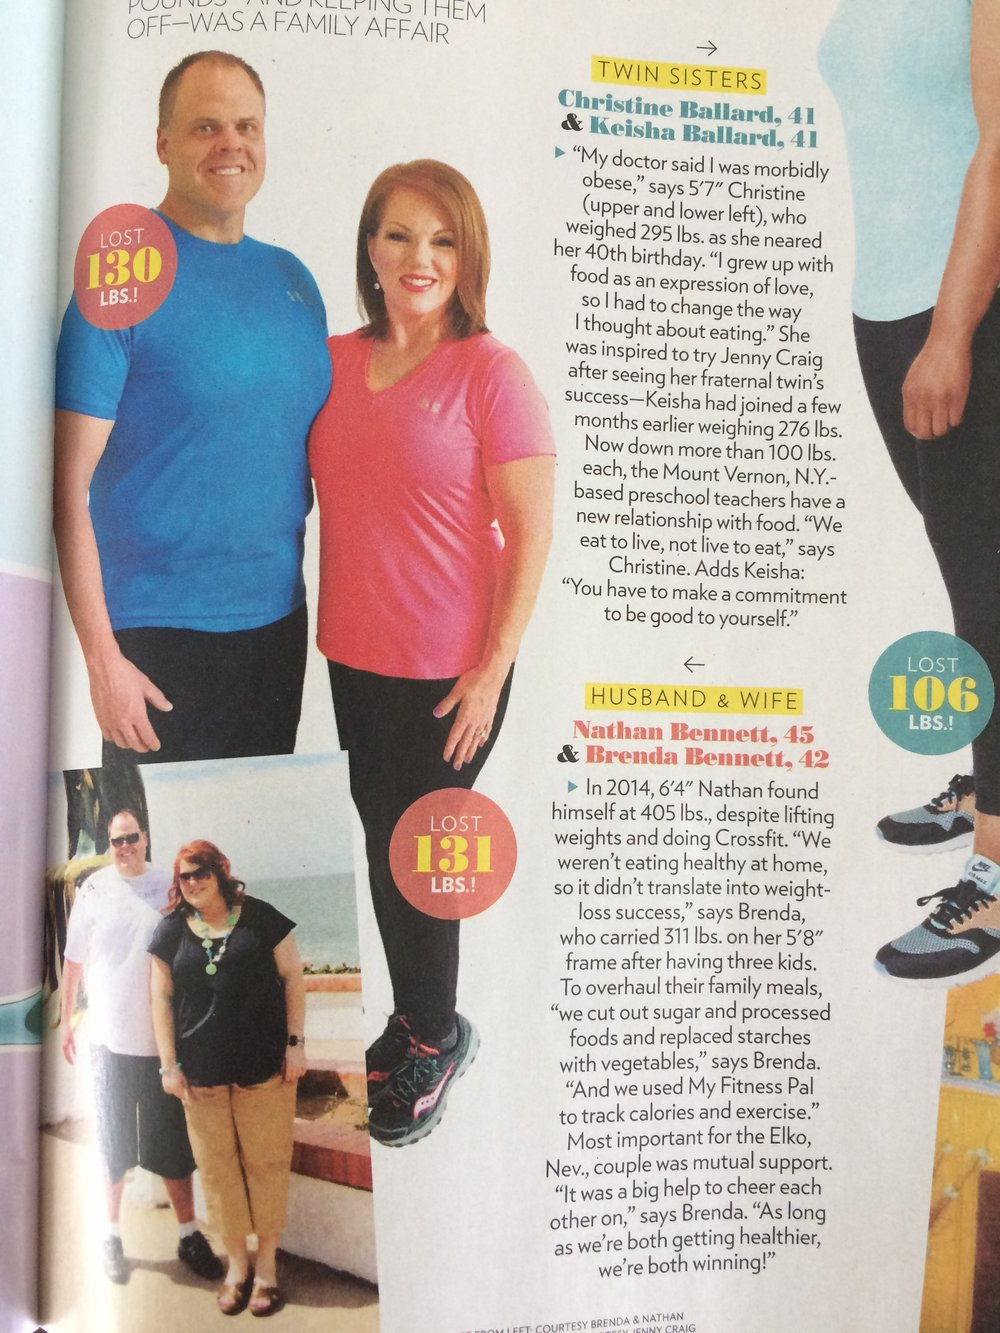 Bodyjoy - Slim Down Challenge participants Brenda & Nate Bennett are featured in People Magazine!  See my Instagram for how YOU can win a FREE spot starting June 5th or register at www.mindybuxton.com!